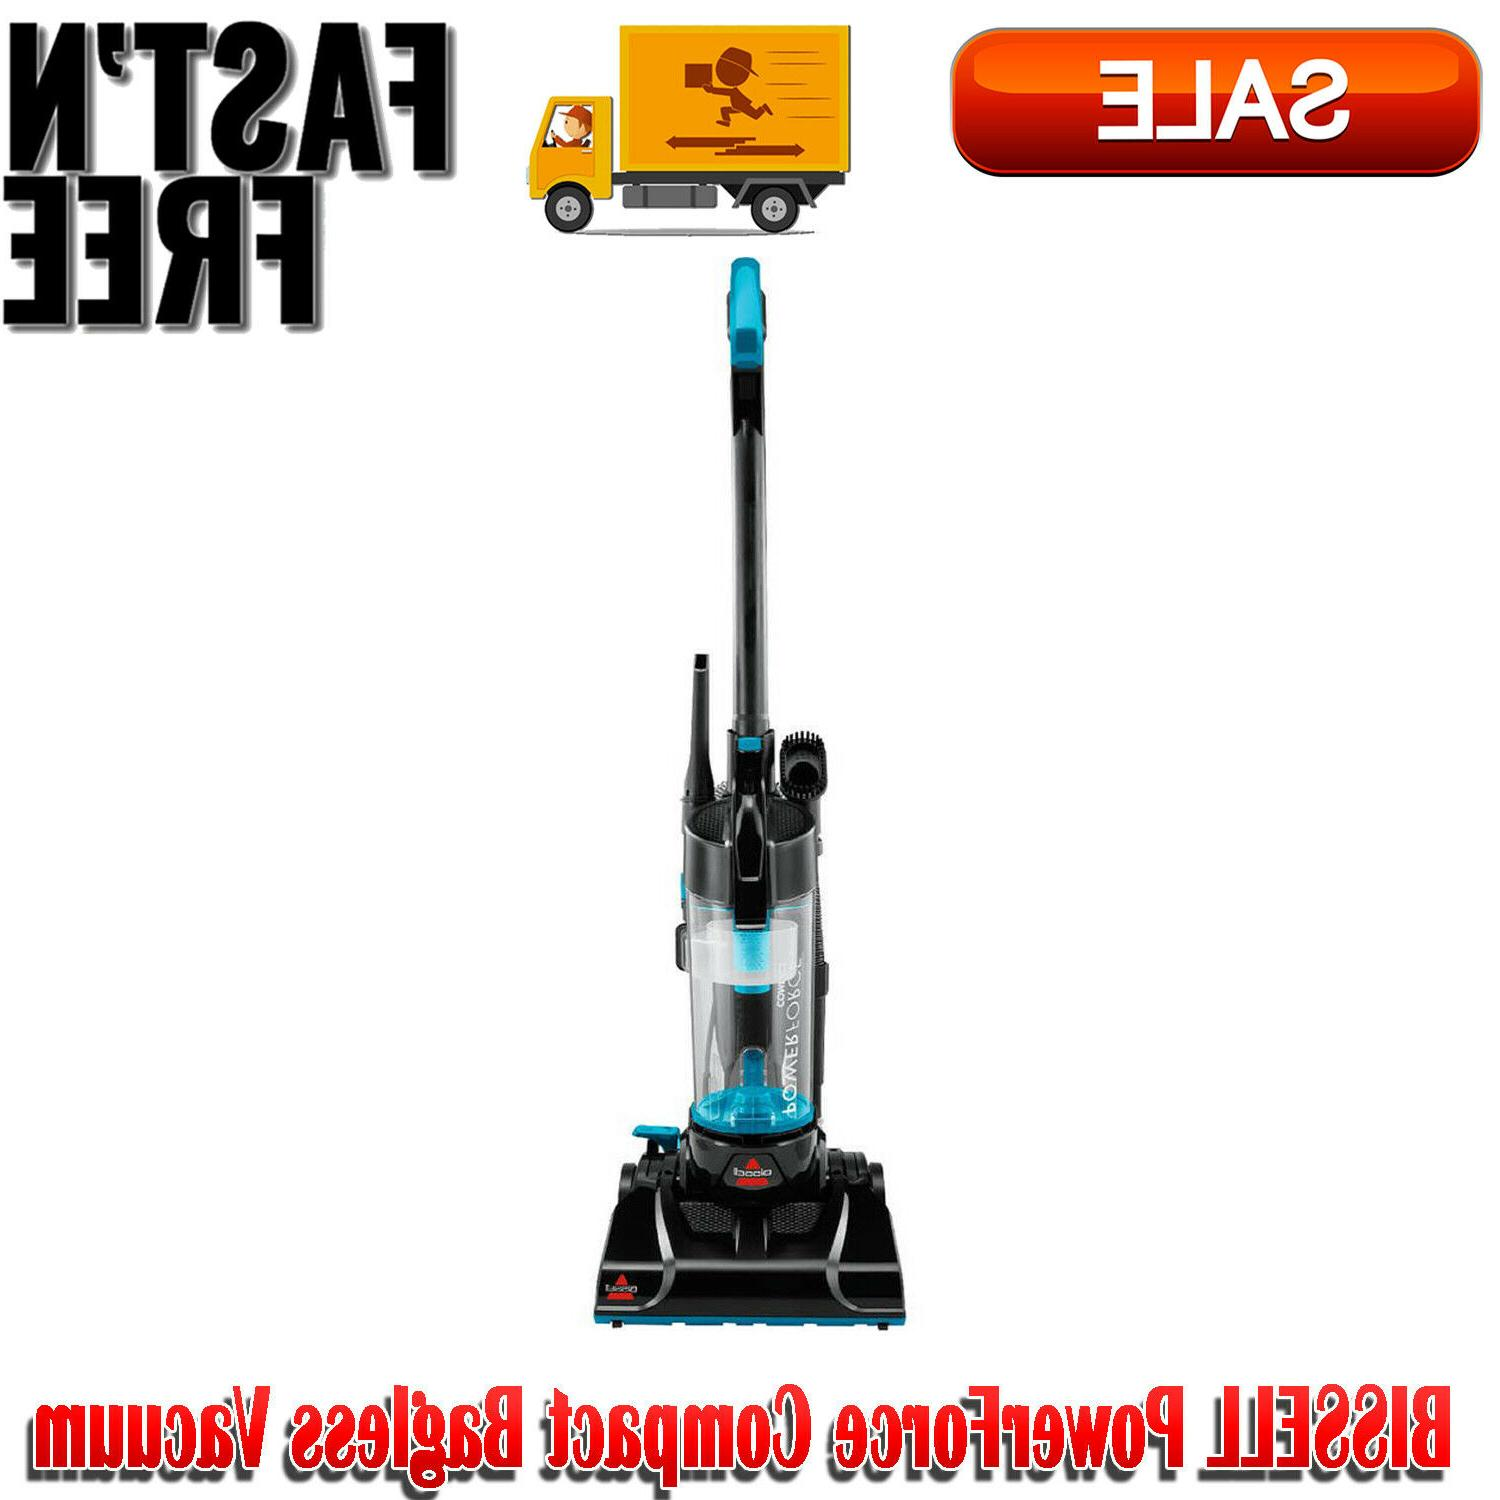 powerforce compact bagless vacuum multi surface cleaner